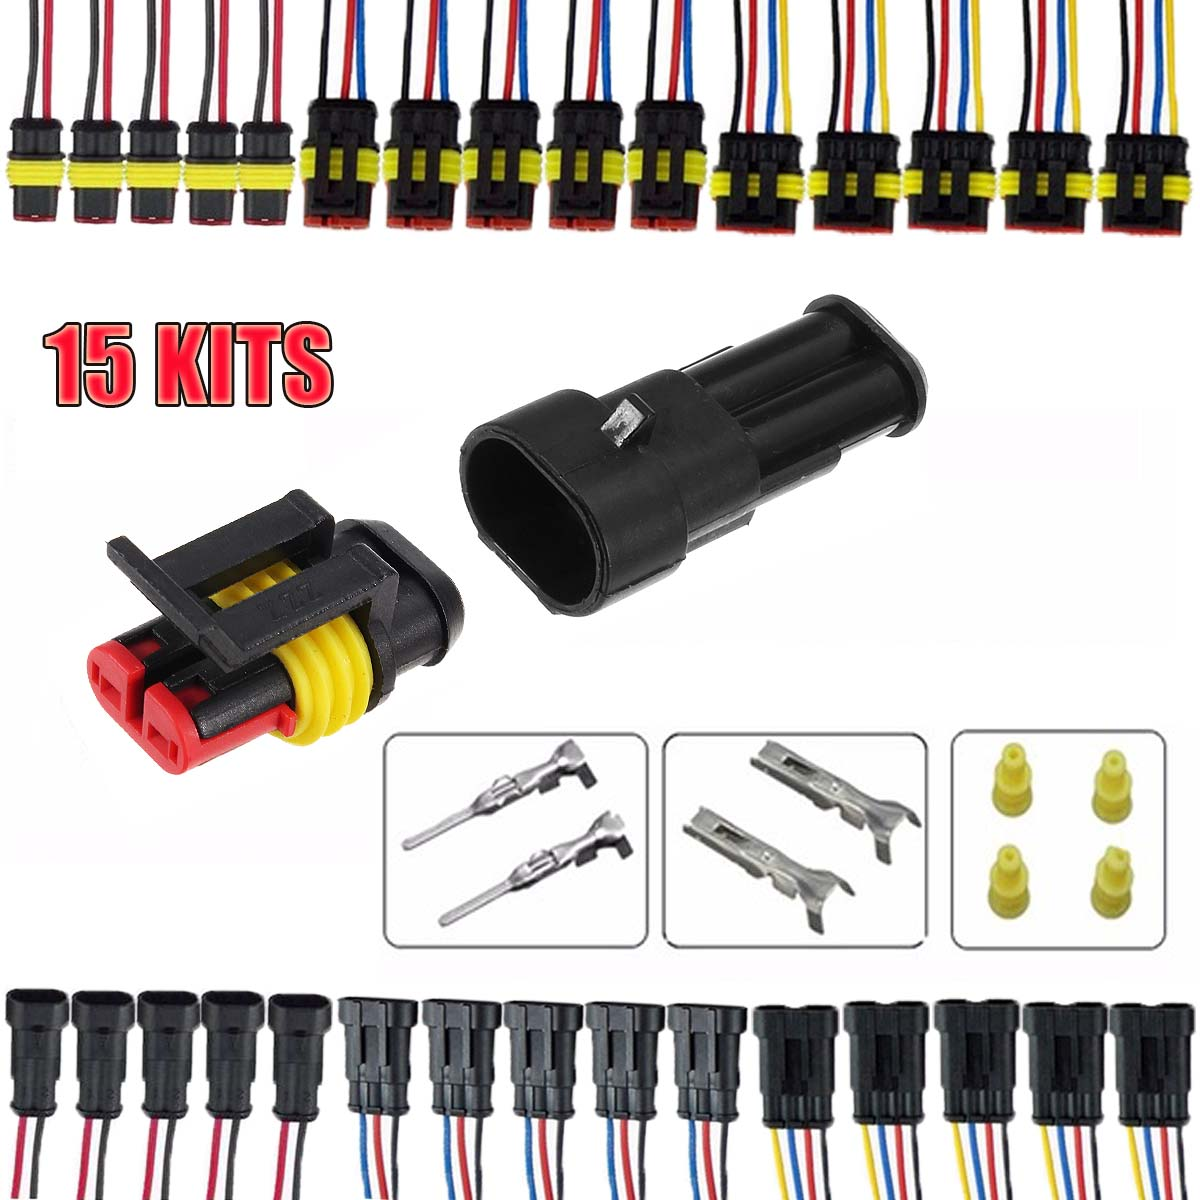 15 Kits 2 3 4 Pins Way Sealed Waterproof Electrical Wire Connector Plug Motorcycle Car Auto